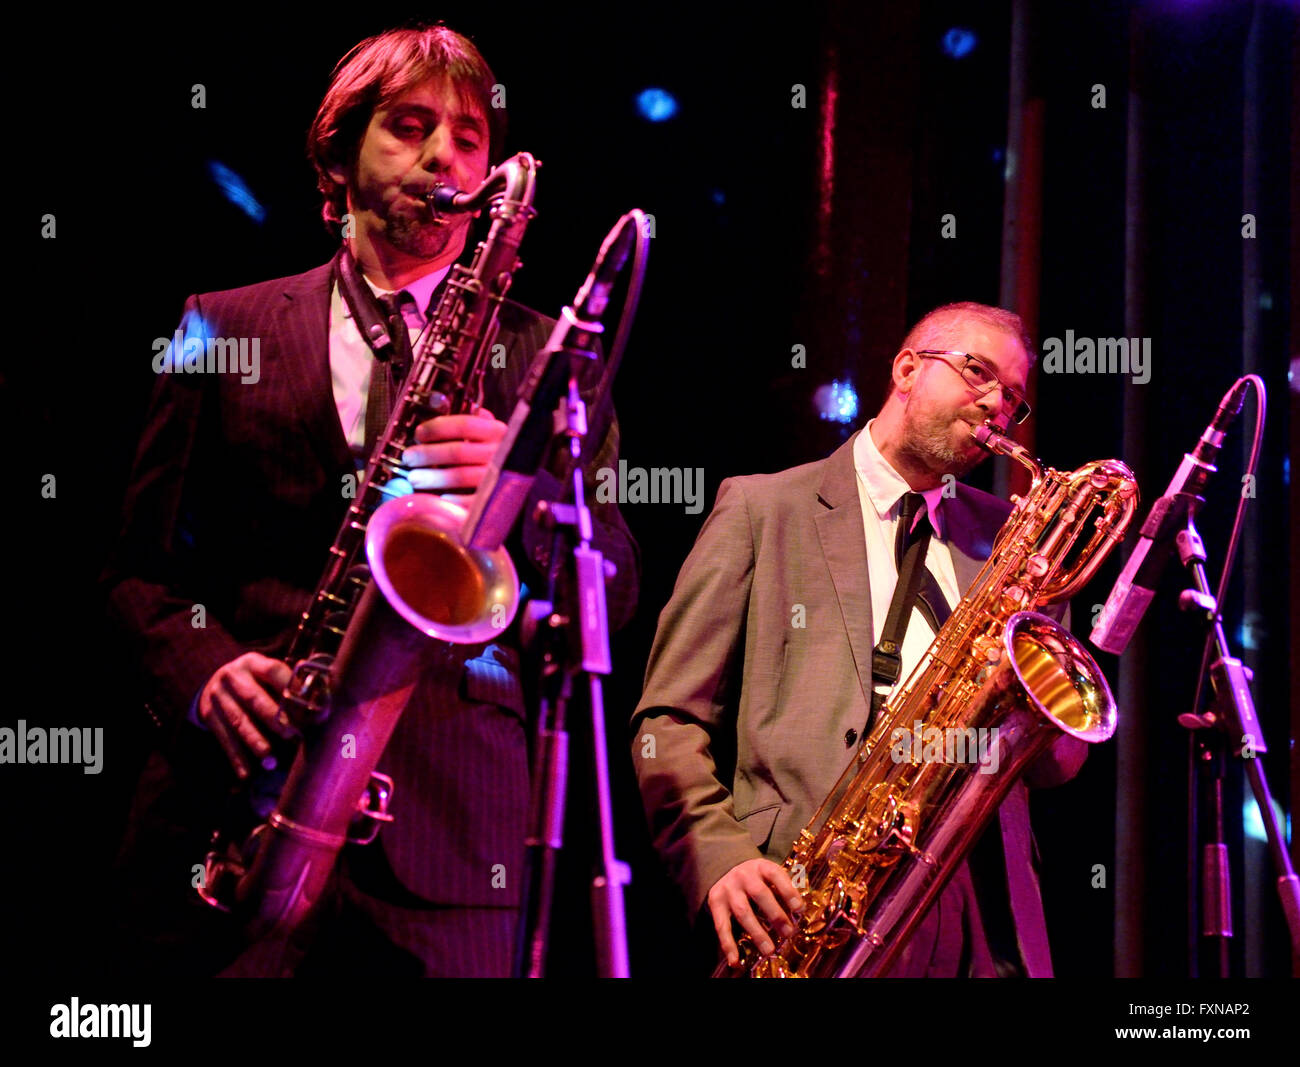 BARCELONA - JAN 9: The Limboos (Rhythm and Blues band) performs at Apolo venue on January 9, 2015 in Barcelona, - Stock Image